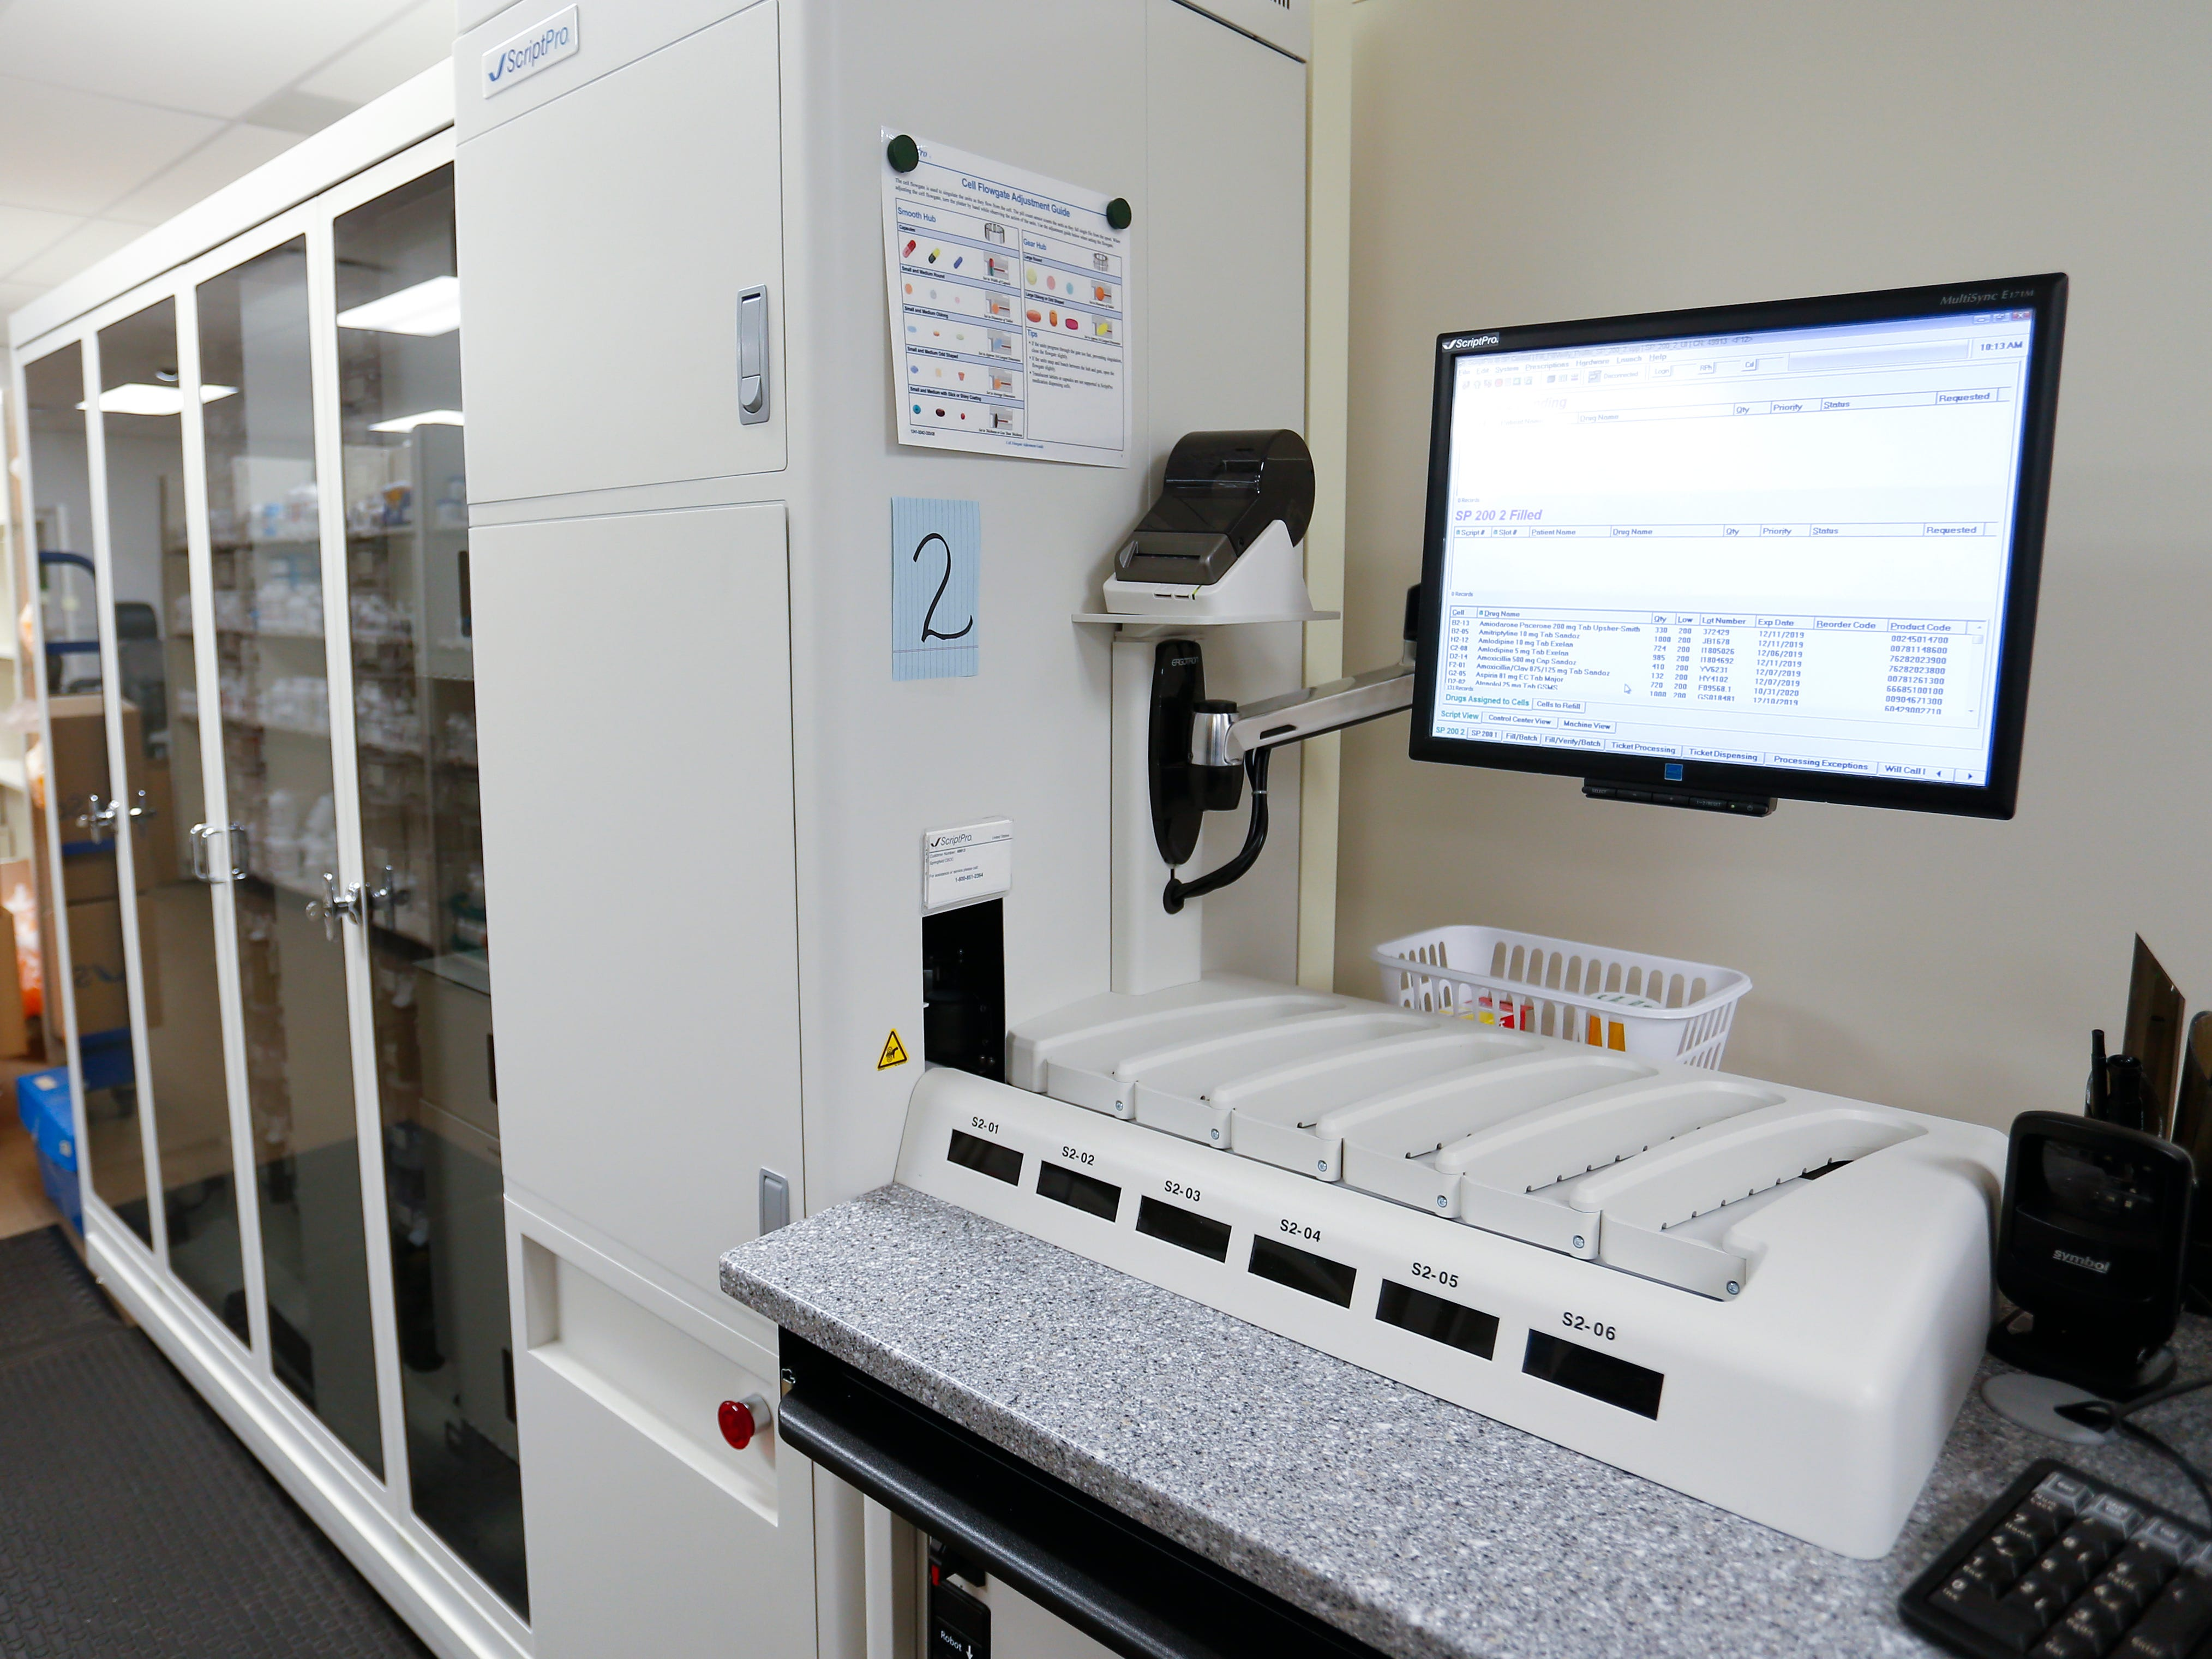 A robotic pharmacy dispensing machine inside the Department of Veterans Affairs Gene Taylor Community Based Outpatient Clinic in south Springfield on Thursday, Jan. 11, 2019.